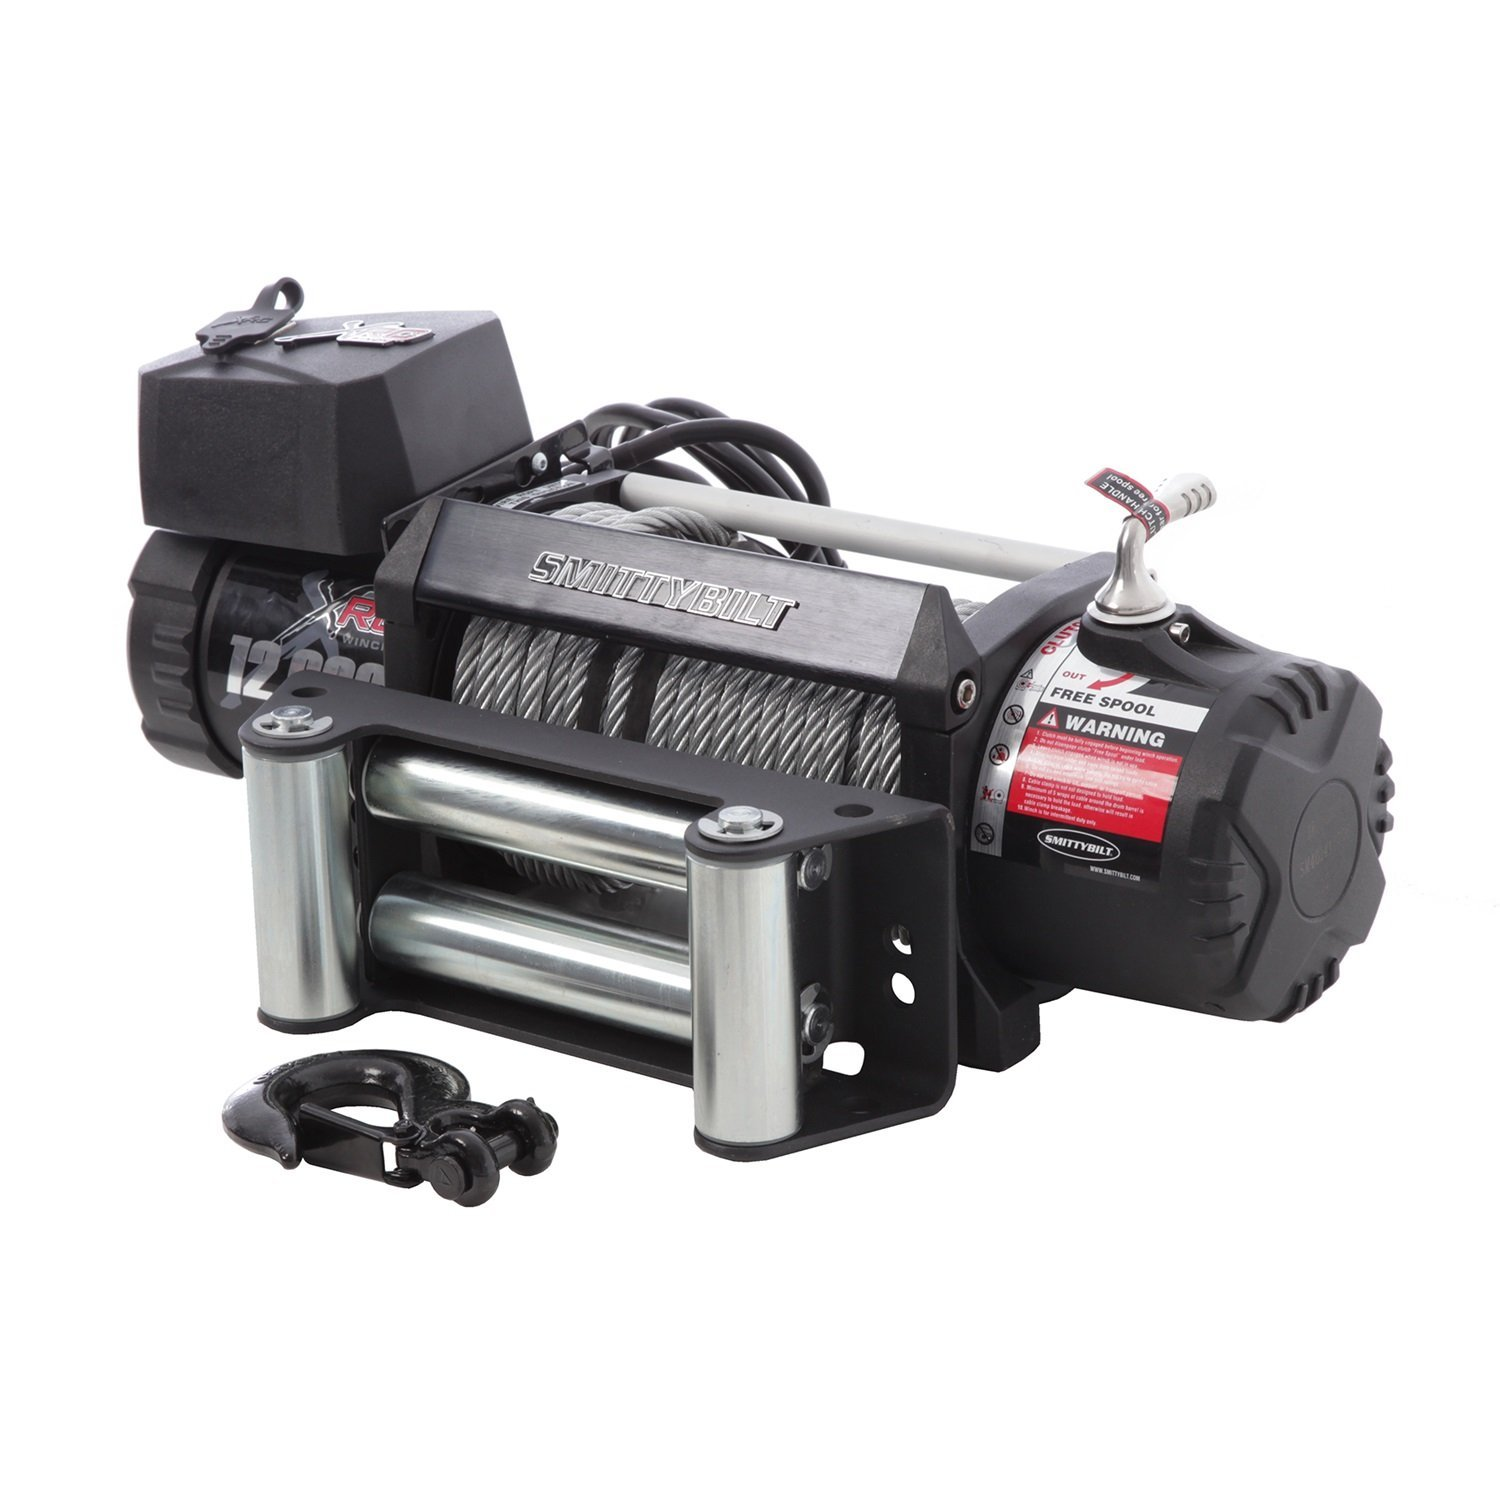 hight resolution of smittybilt xrc winch with 12000 lb load capacity